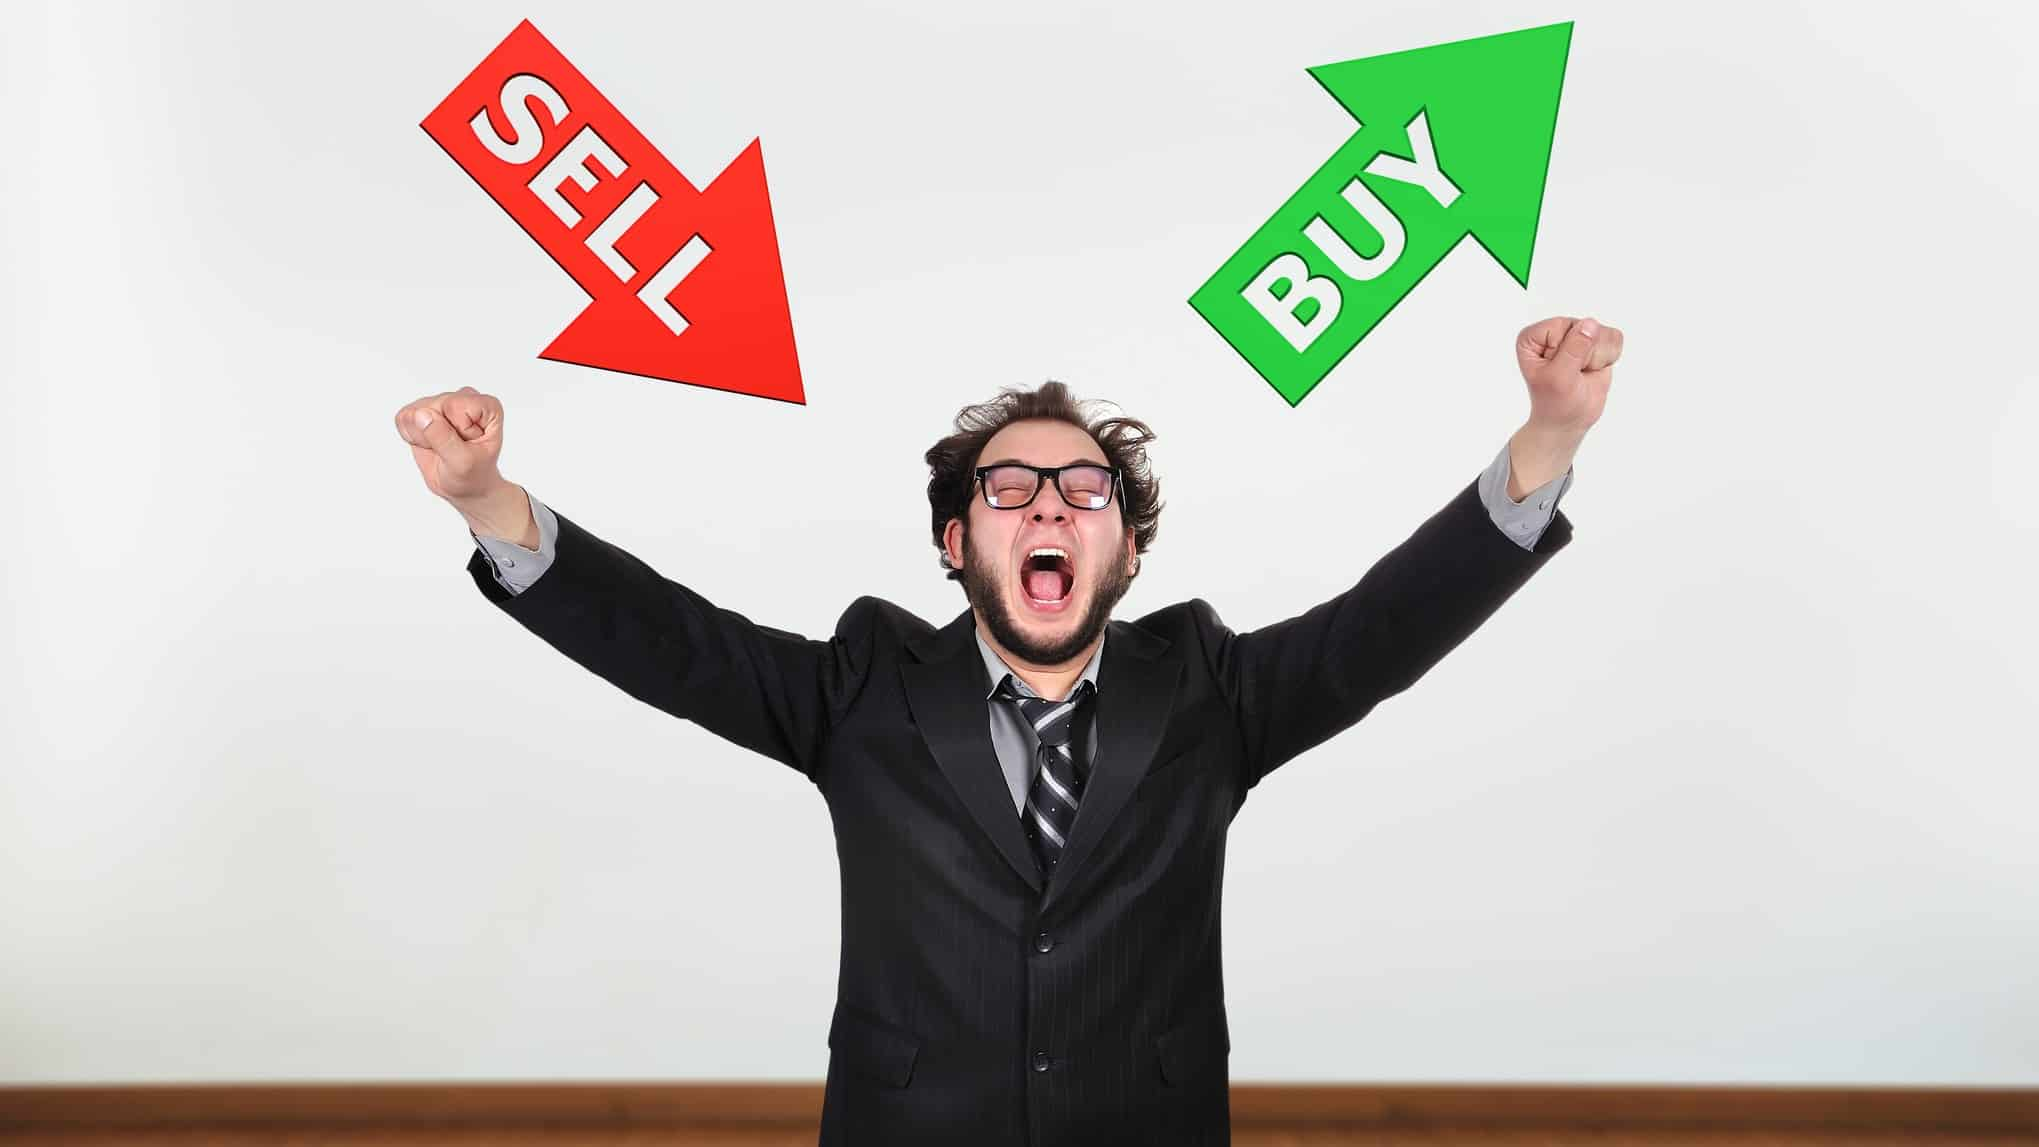 asx shares represented by investor throwing hands up towards icons of buy and sell broker upgrade buy